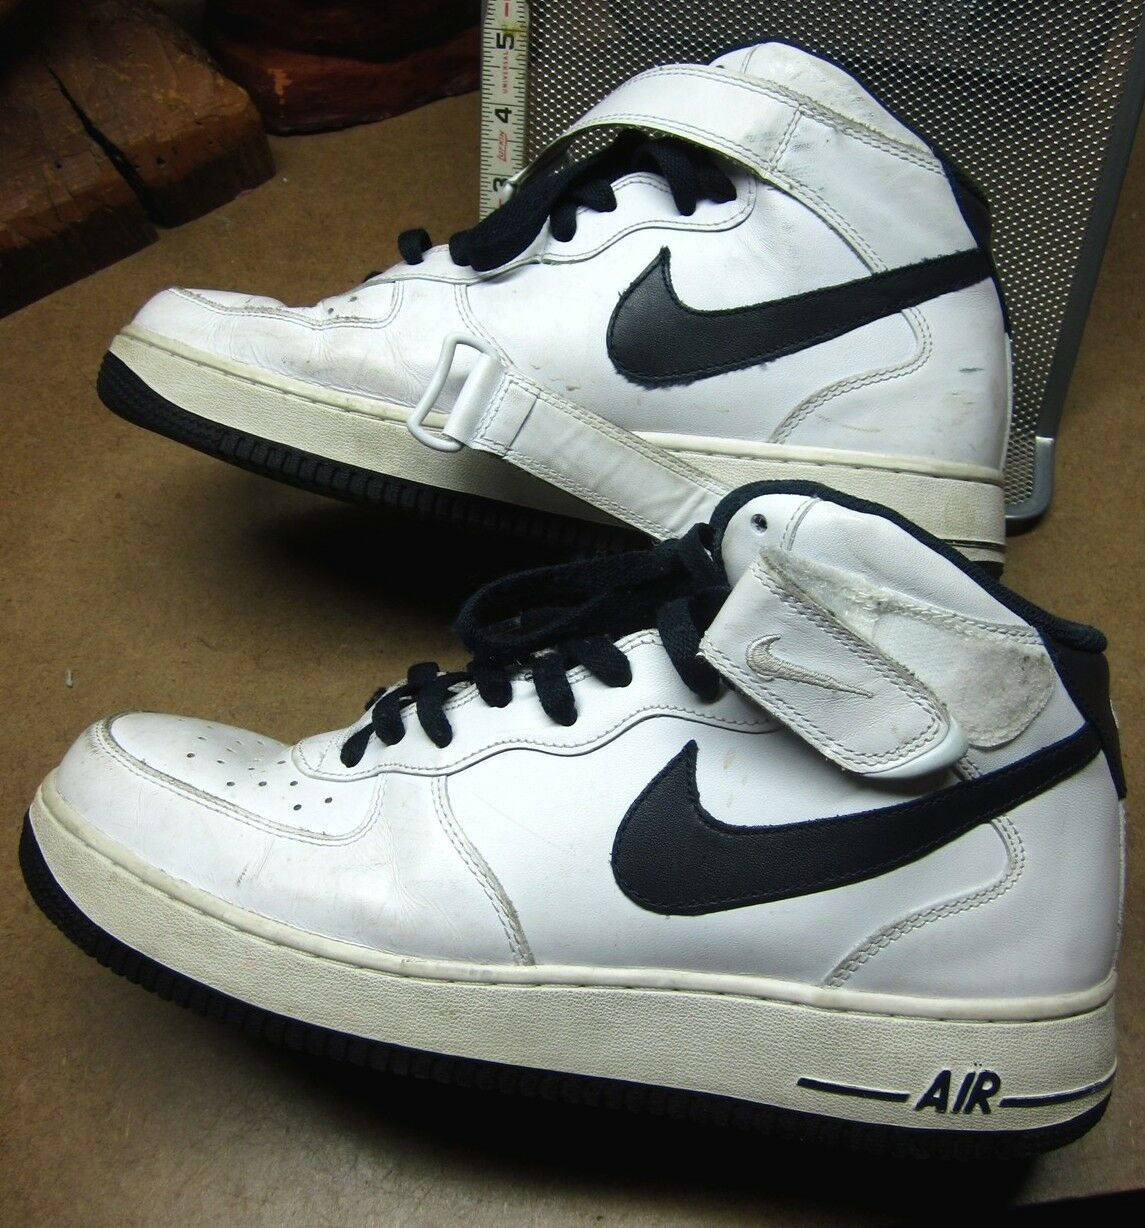 NIKE AIR FORCE 1 white tennis shoes 2011 size 10½ basketball